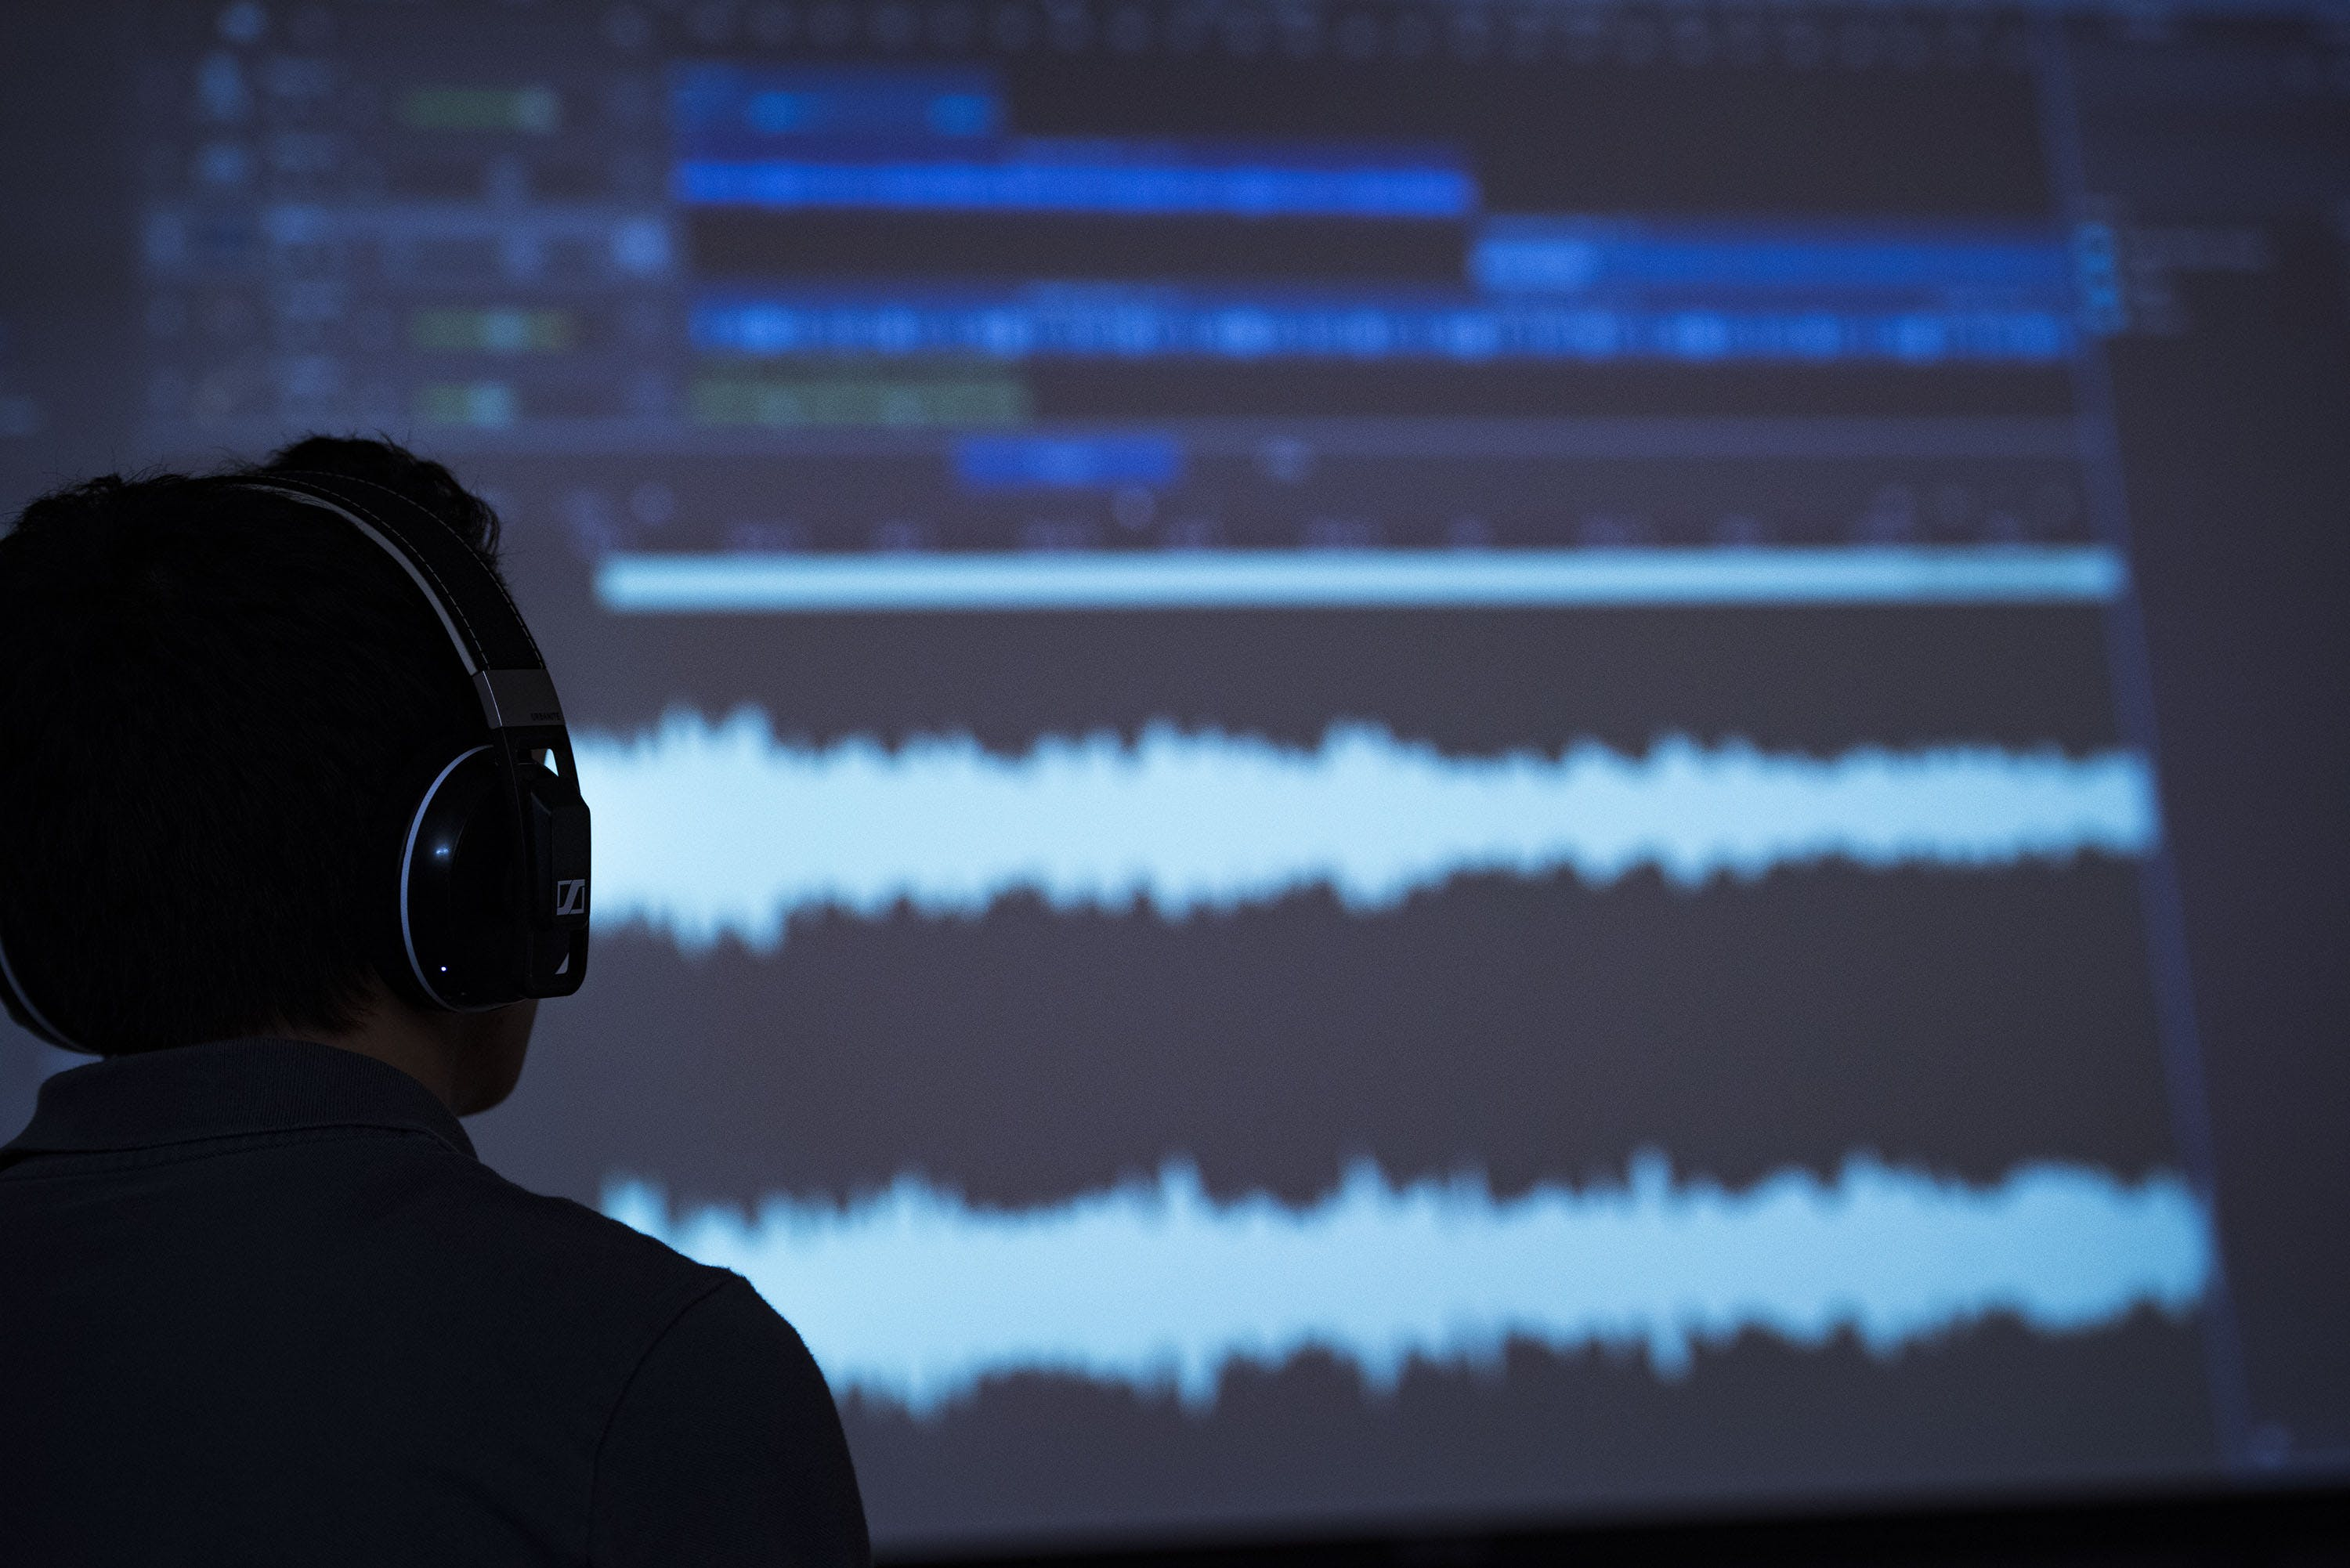 A student with headphones listening to an audio file